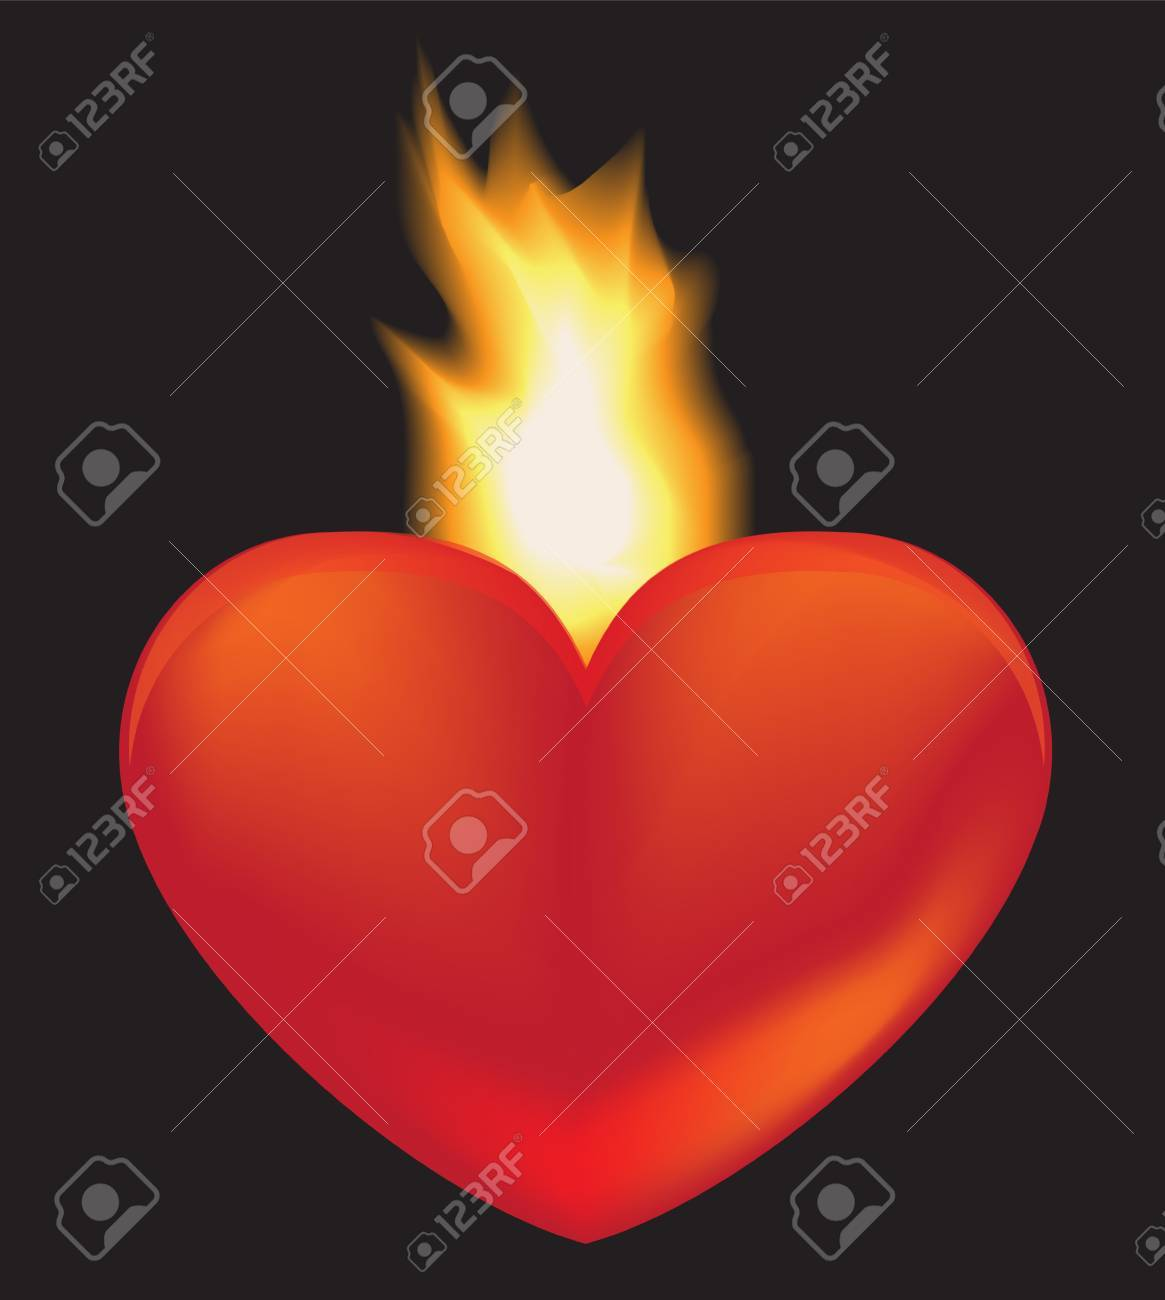 heart on a black background. Behind the heart burns a flame Stock Vector - 16755254